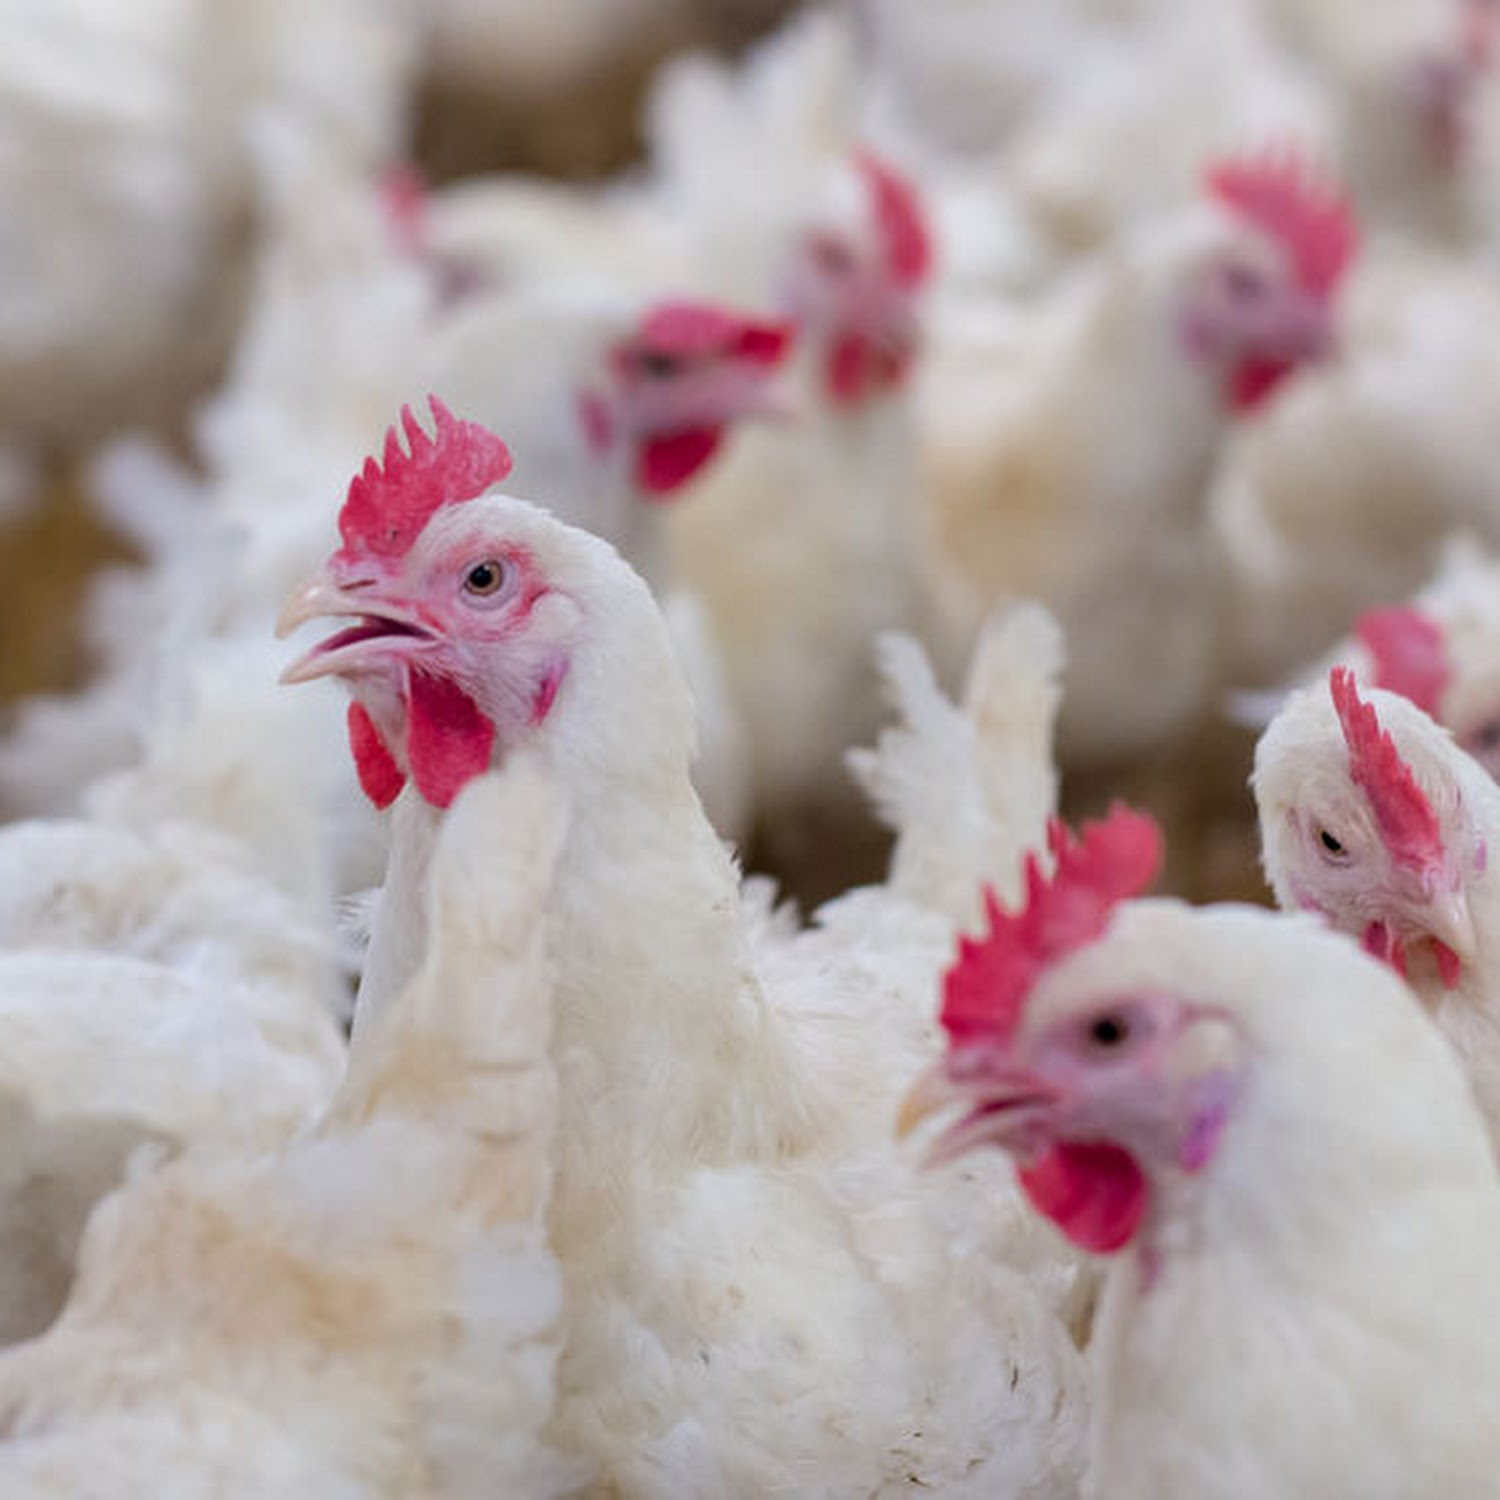 No new avian influenza outbreaks reported